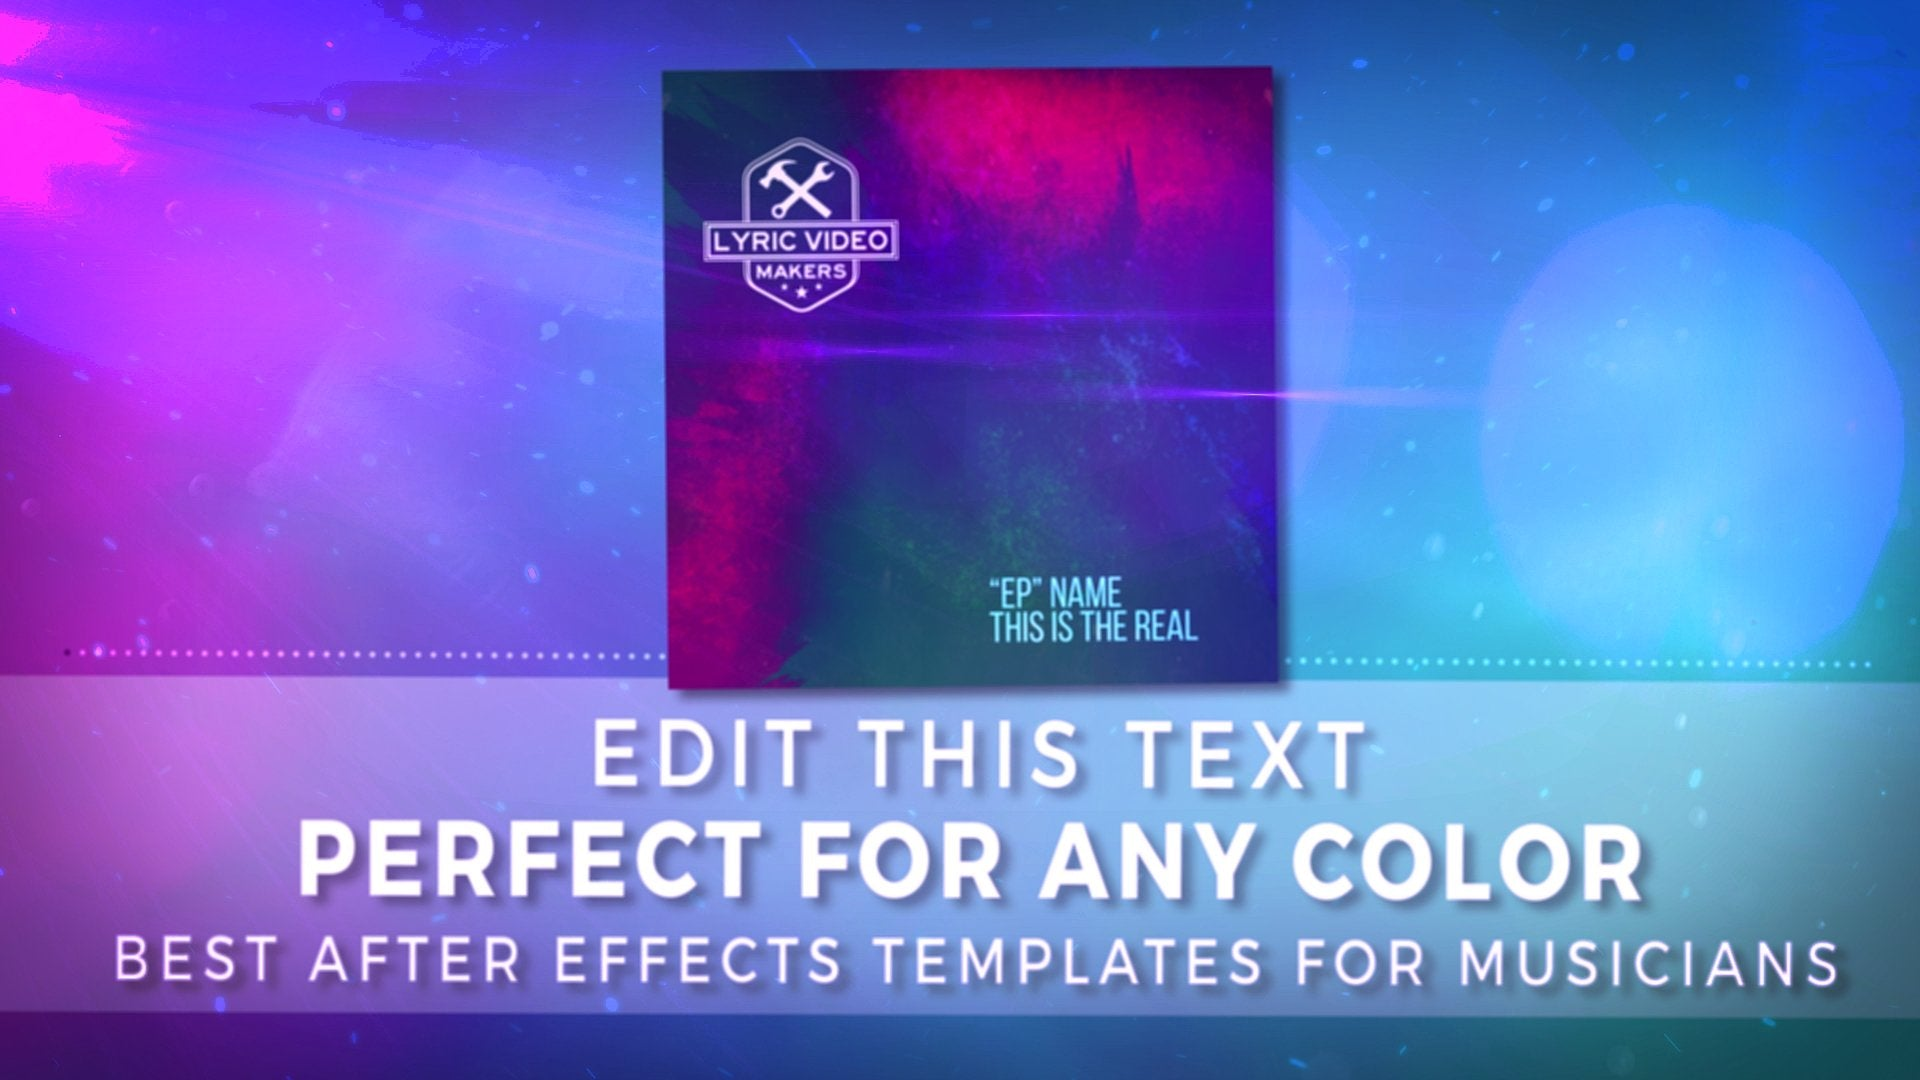 #012 Lost Crosses - Melodic Hardcore Visualizer Template for After Effects - lyric-video-shop